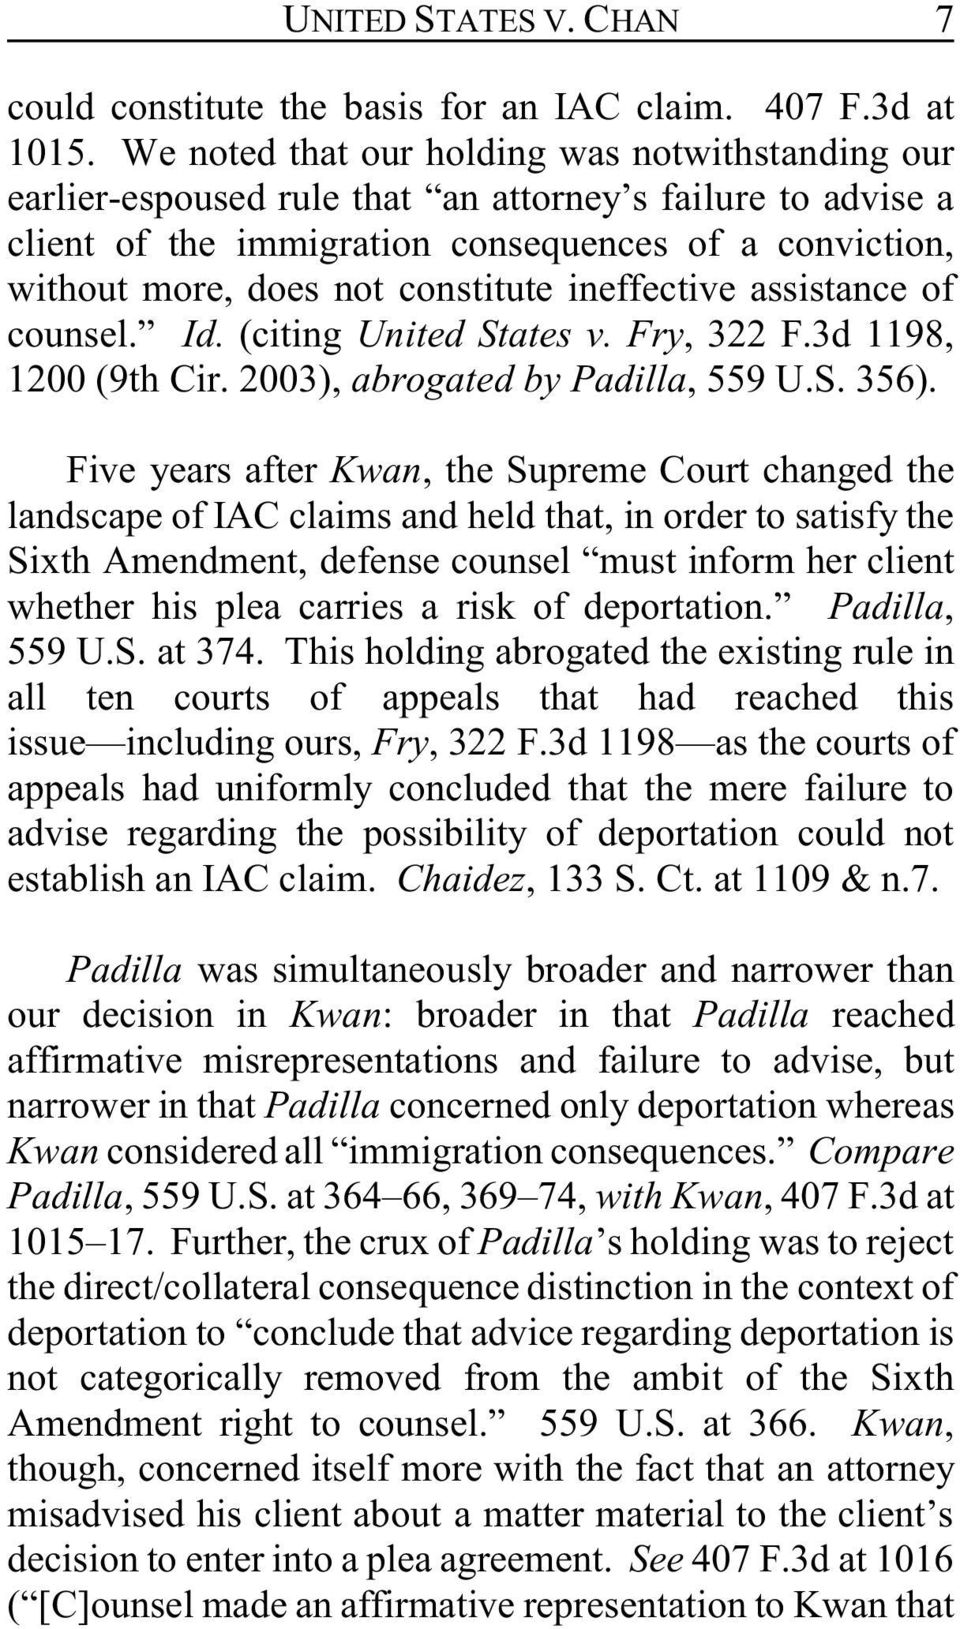 constitute ineffective assistance of counsel. Id. (citing United States v. Fry, 322 F.3d 1198, 1200 (9th Cir. 2003), abrogated by Padilla, 559 U.S. 356).